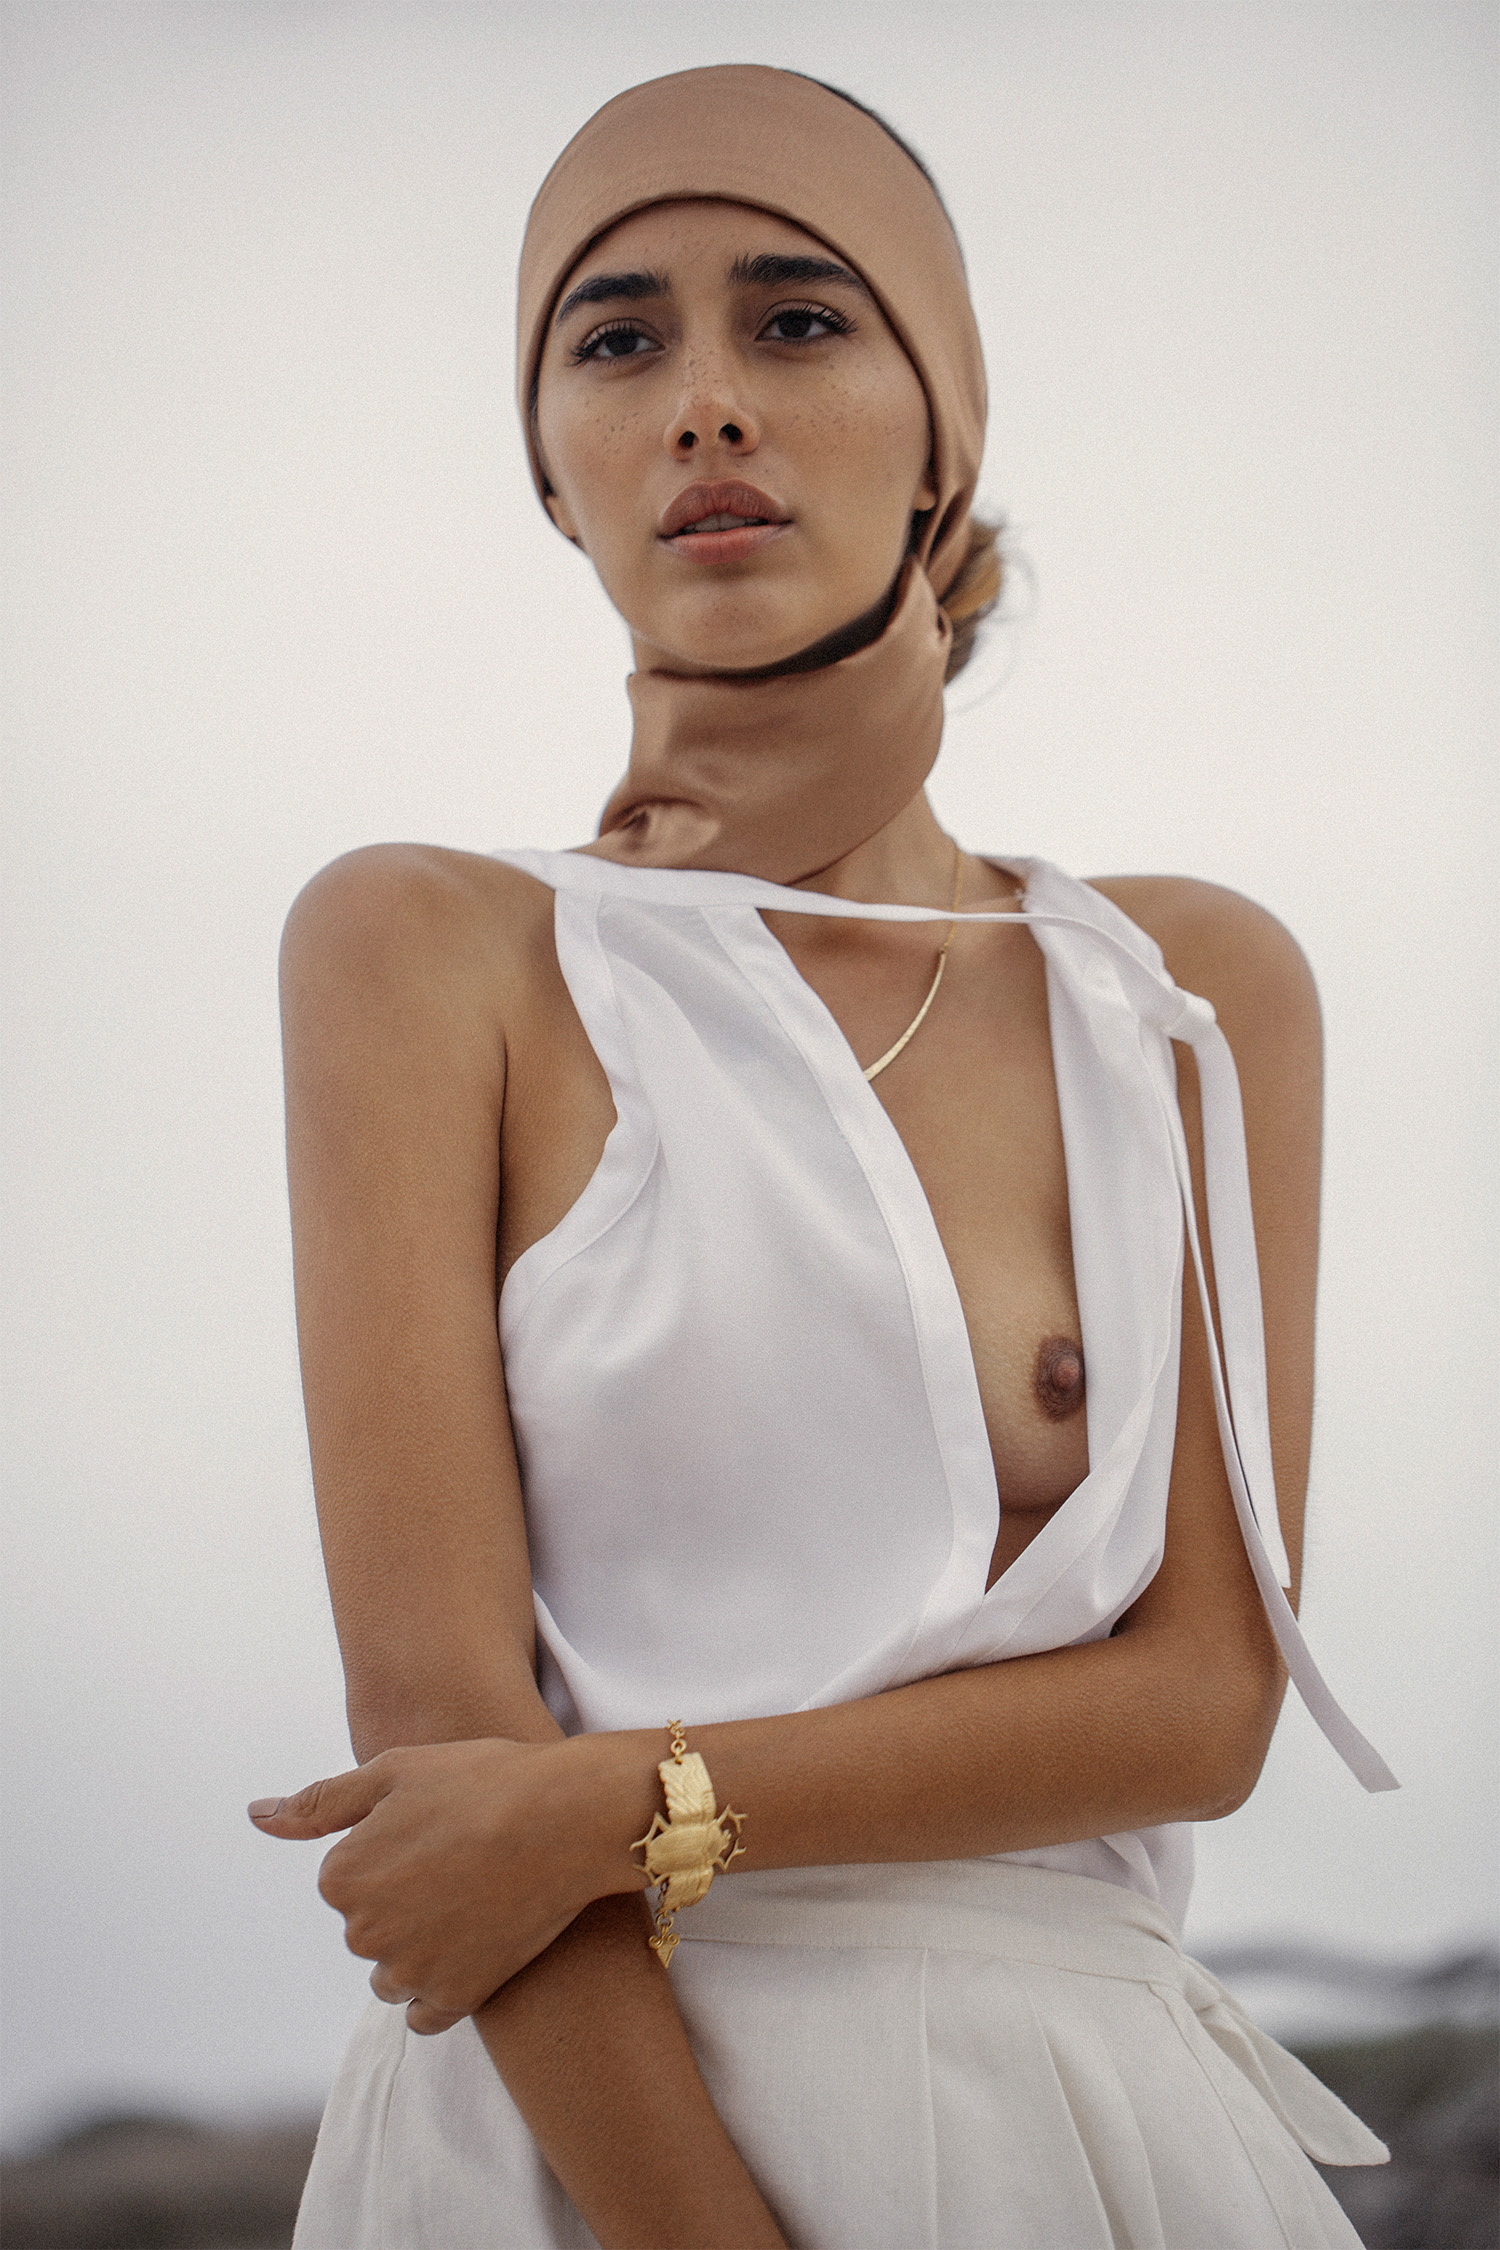 White top, Noël of Me by Demet Karatas; white skirt, Margot Molyneux at Mungo & Jemima; white trousers, vintage at Nevernew; necklace and bracelet, Sarah Mulder Jewelry; head wrap, stylist's own